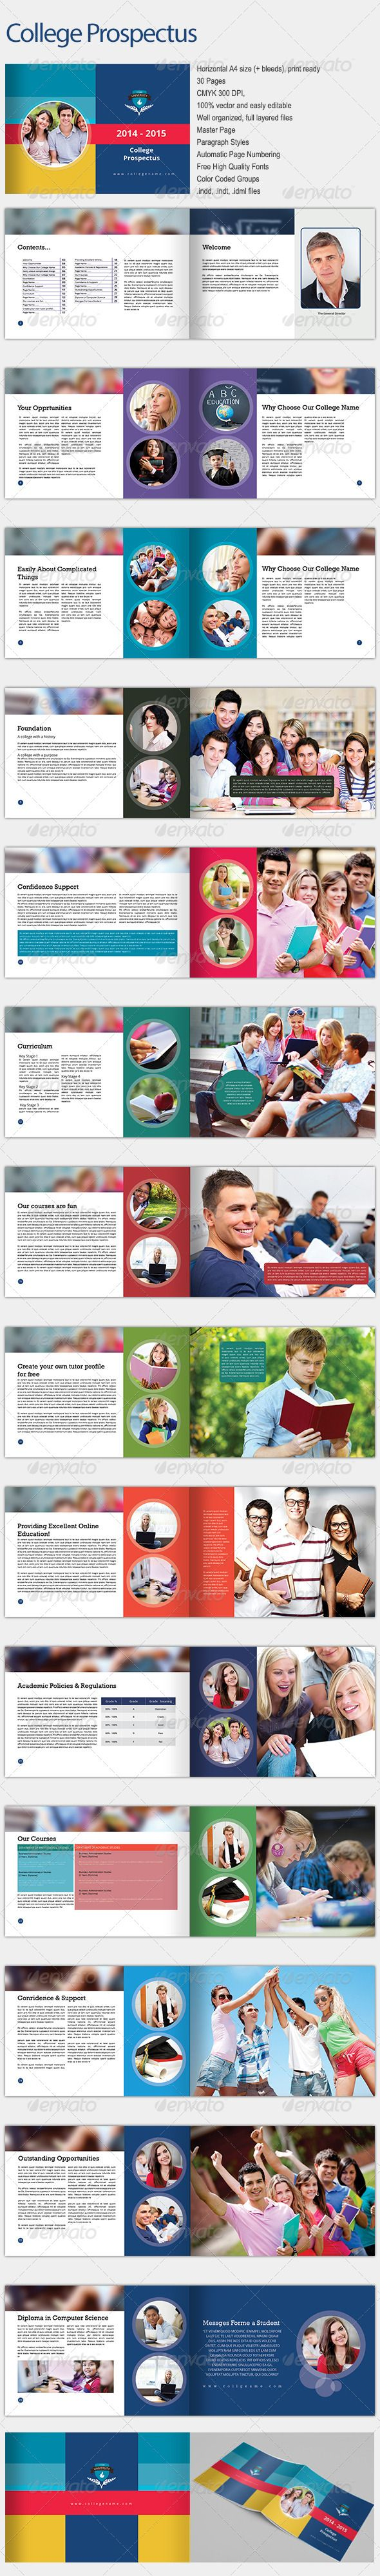 College Prospectus  College Adobe Indesign And Brochures